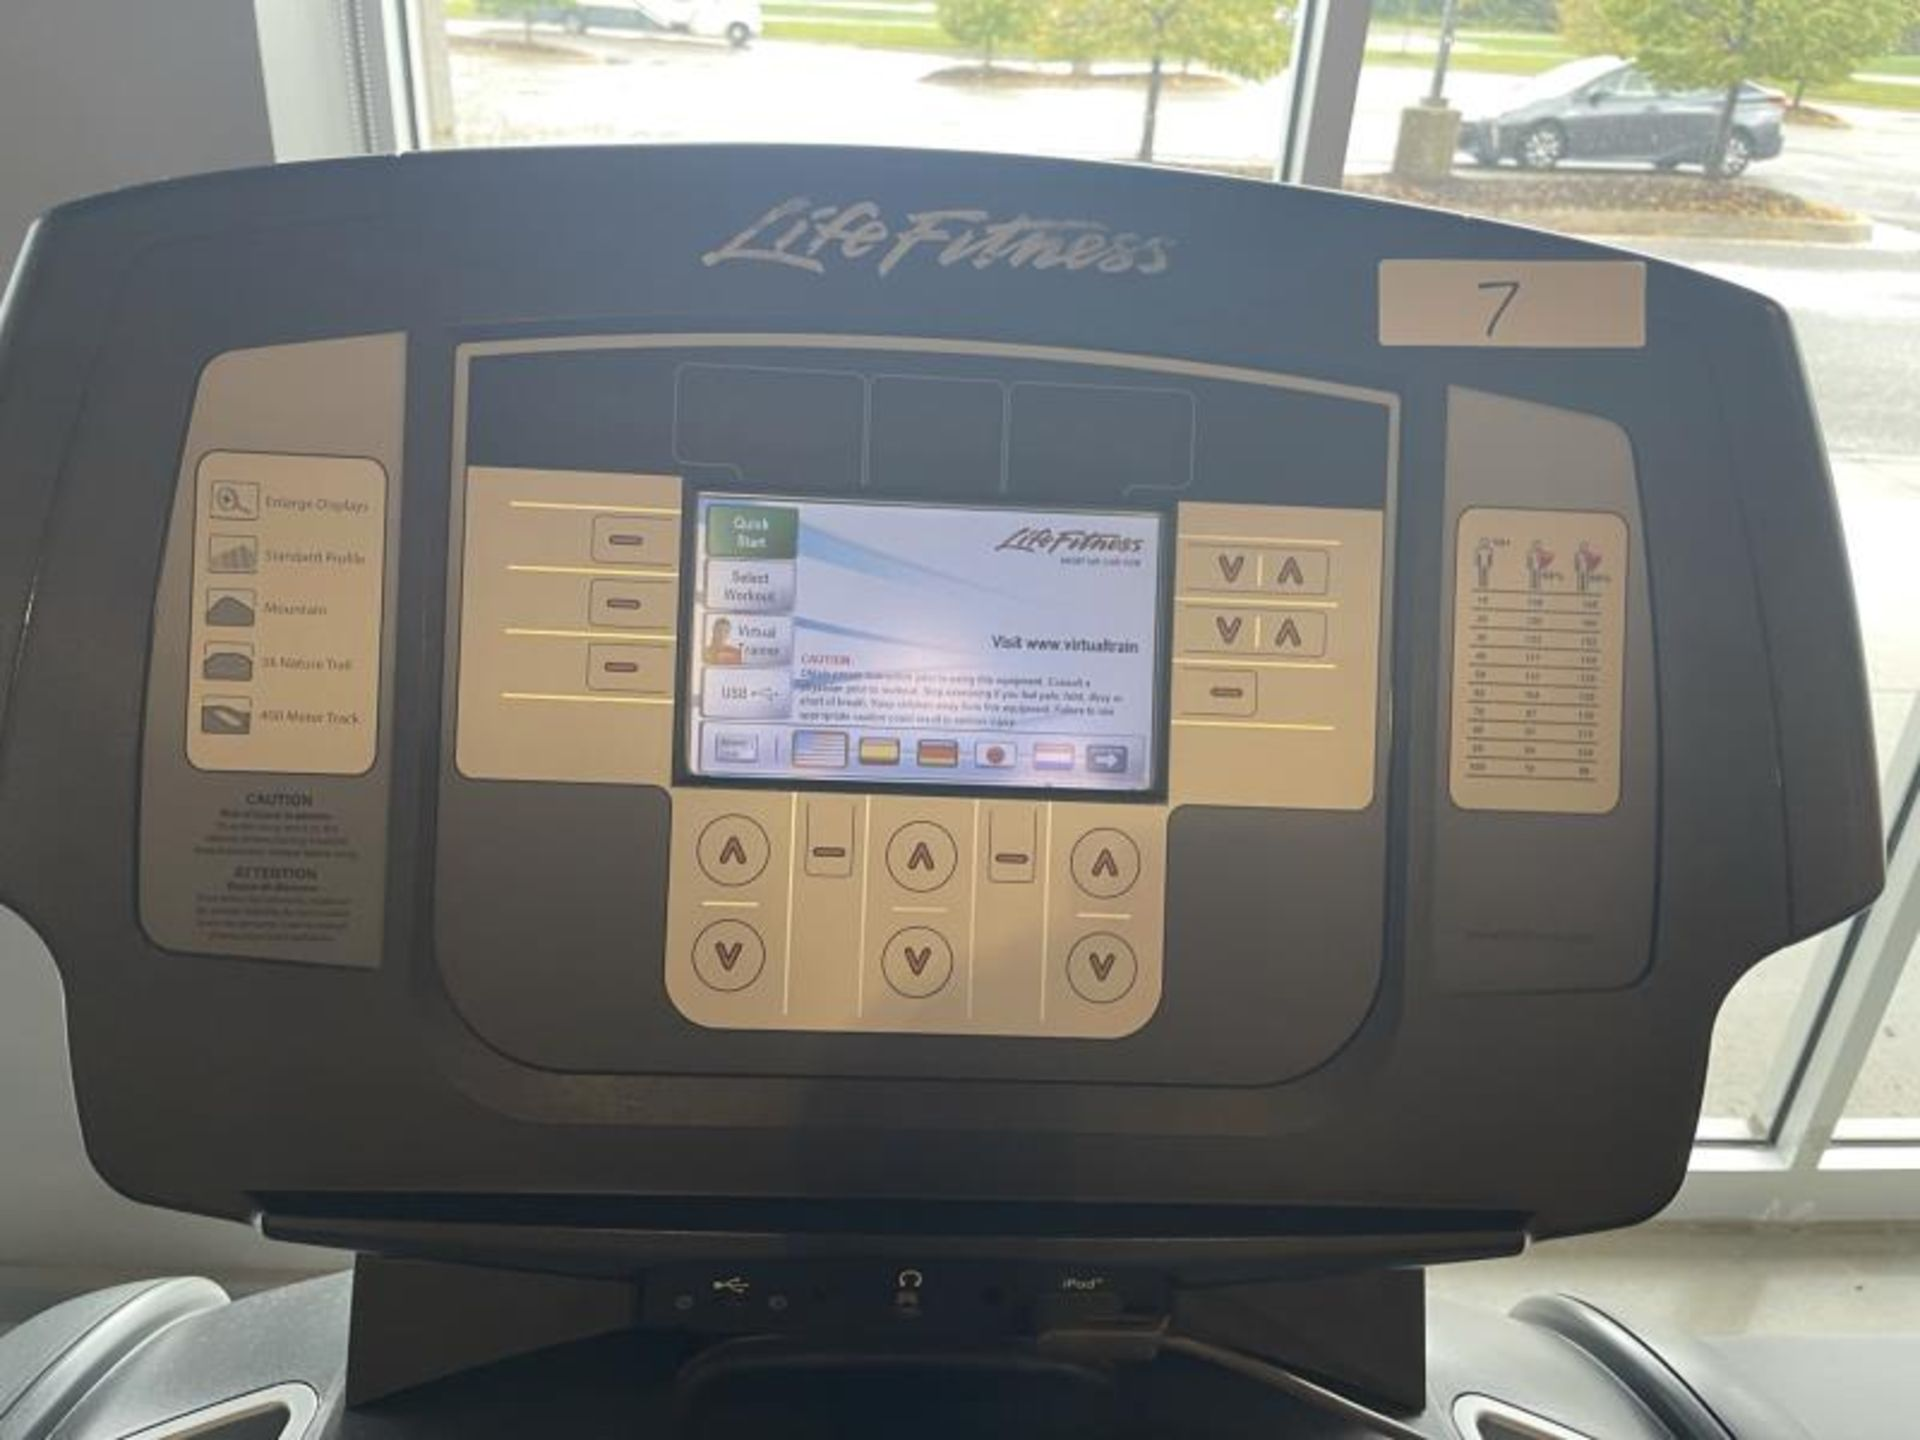 Life Fitness Treadmill M: 95T with Flex Deck, Shock Absorption System SN: TET107099 - Image 2 of 2